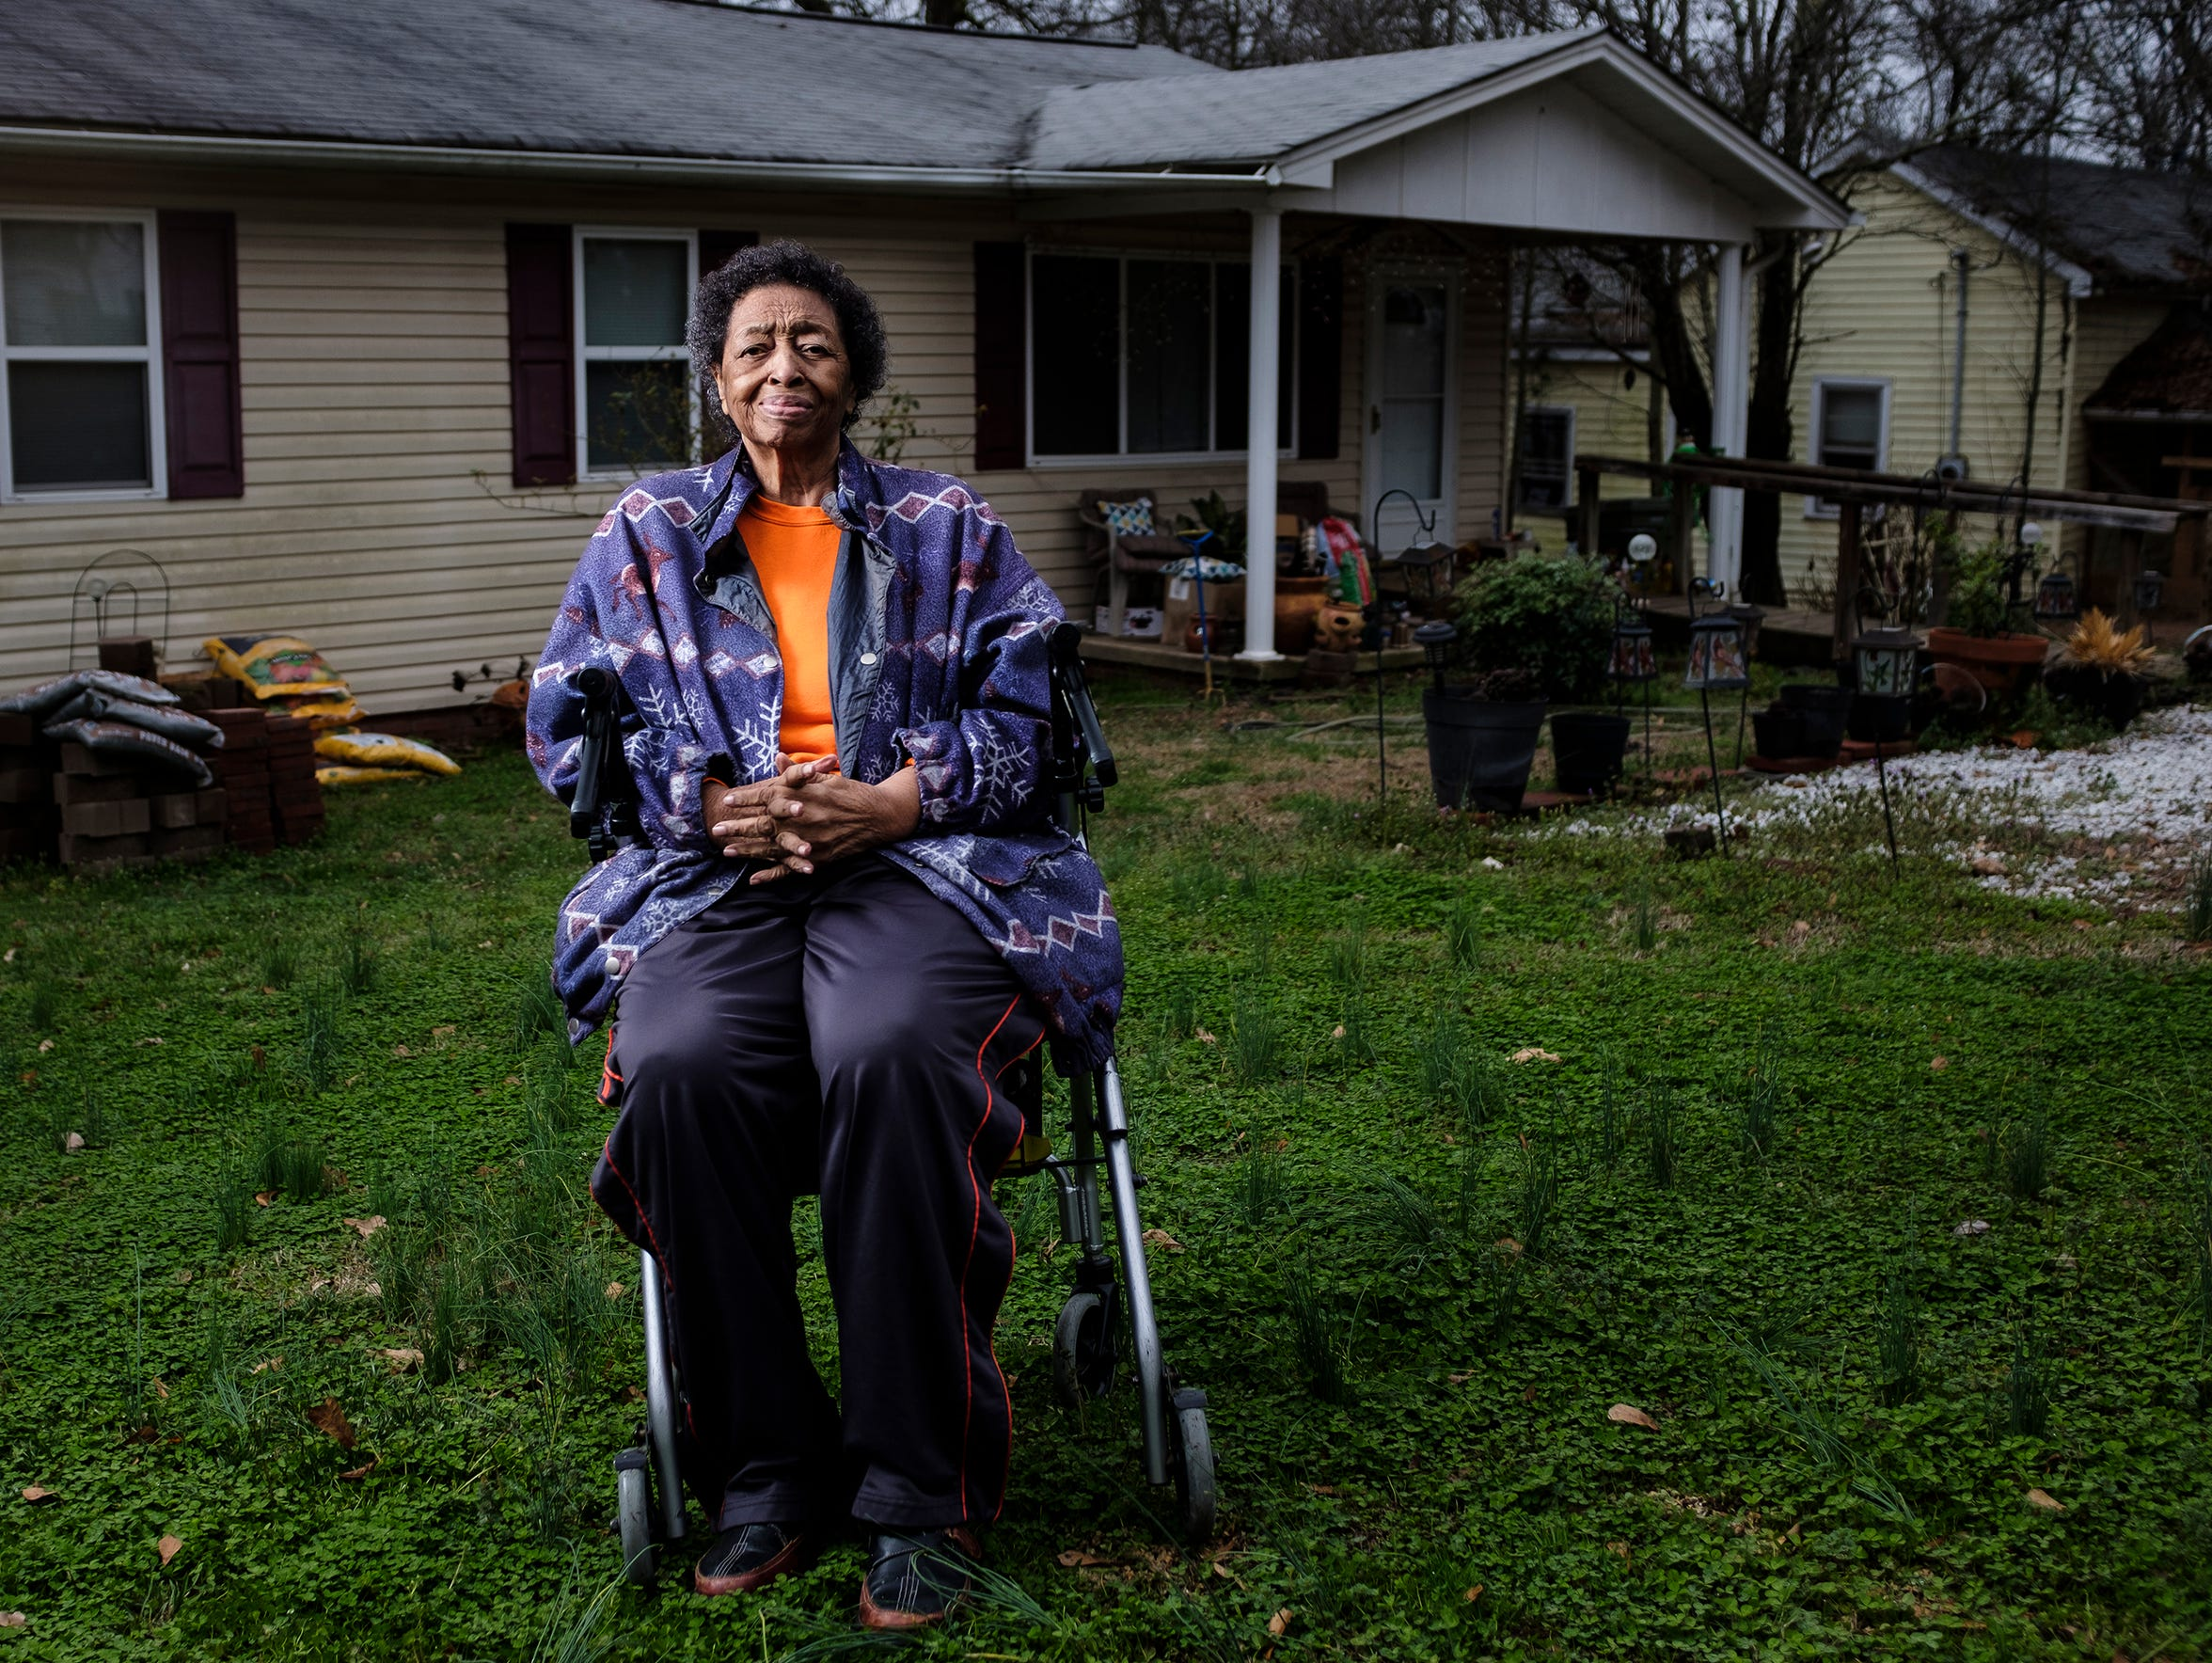 Ann Warren, 83, sits in front of her home in the Calhoun